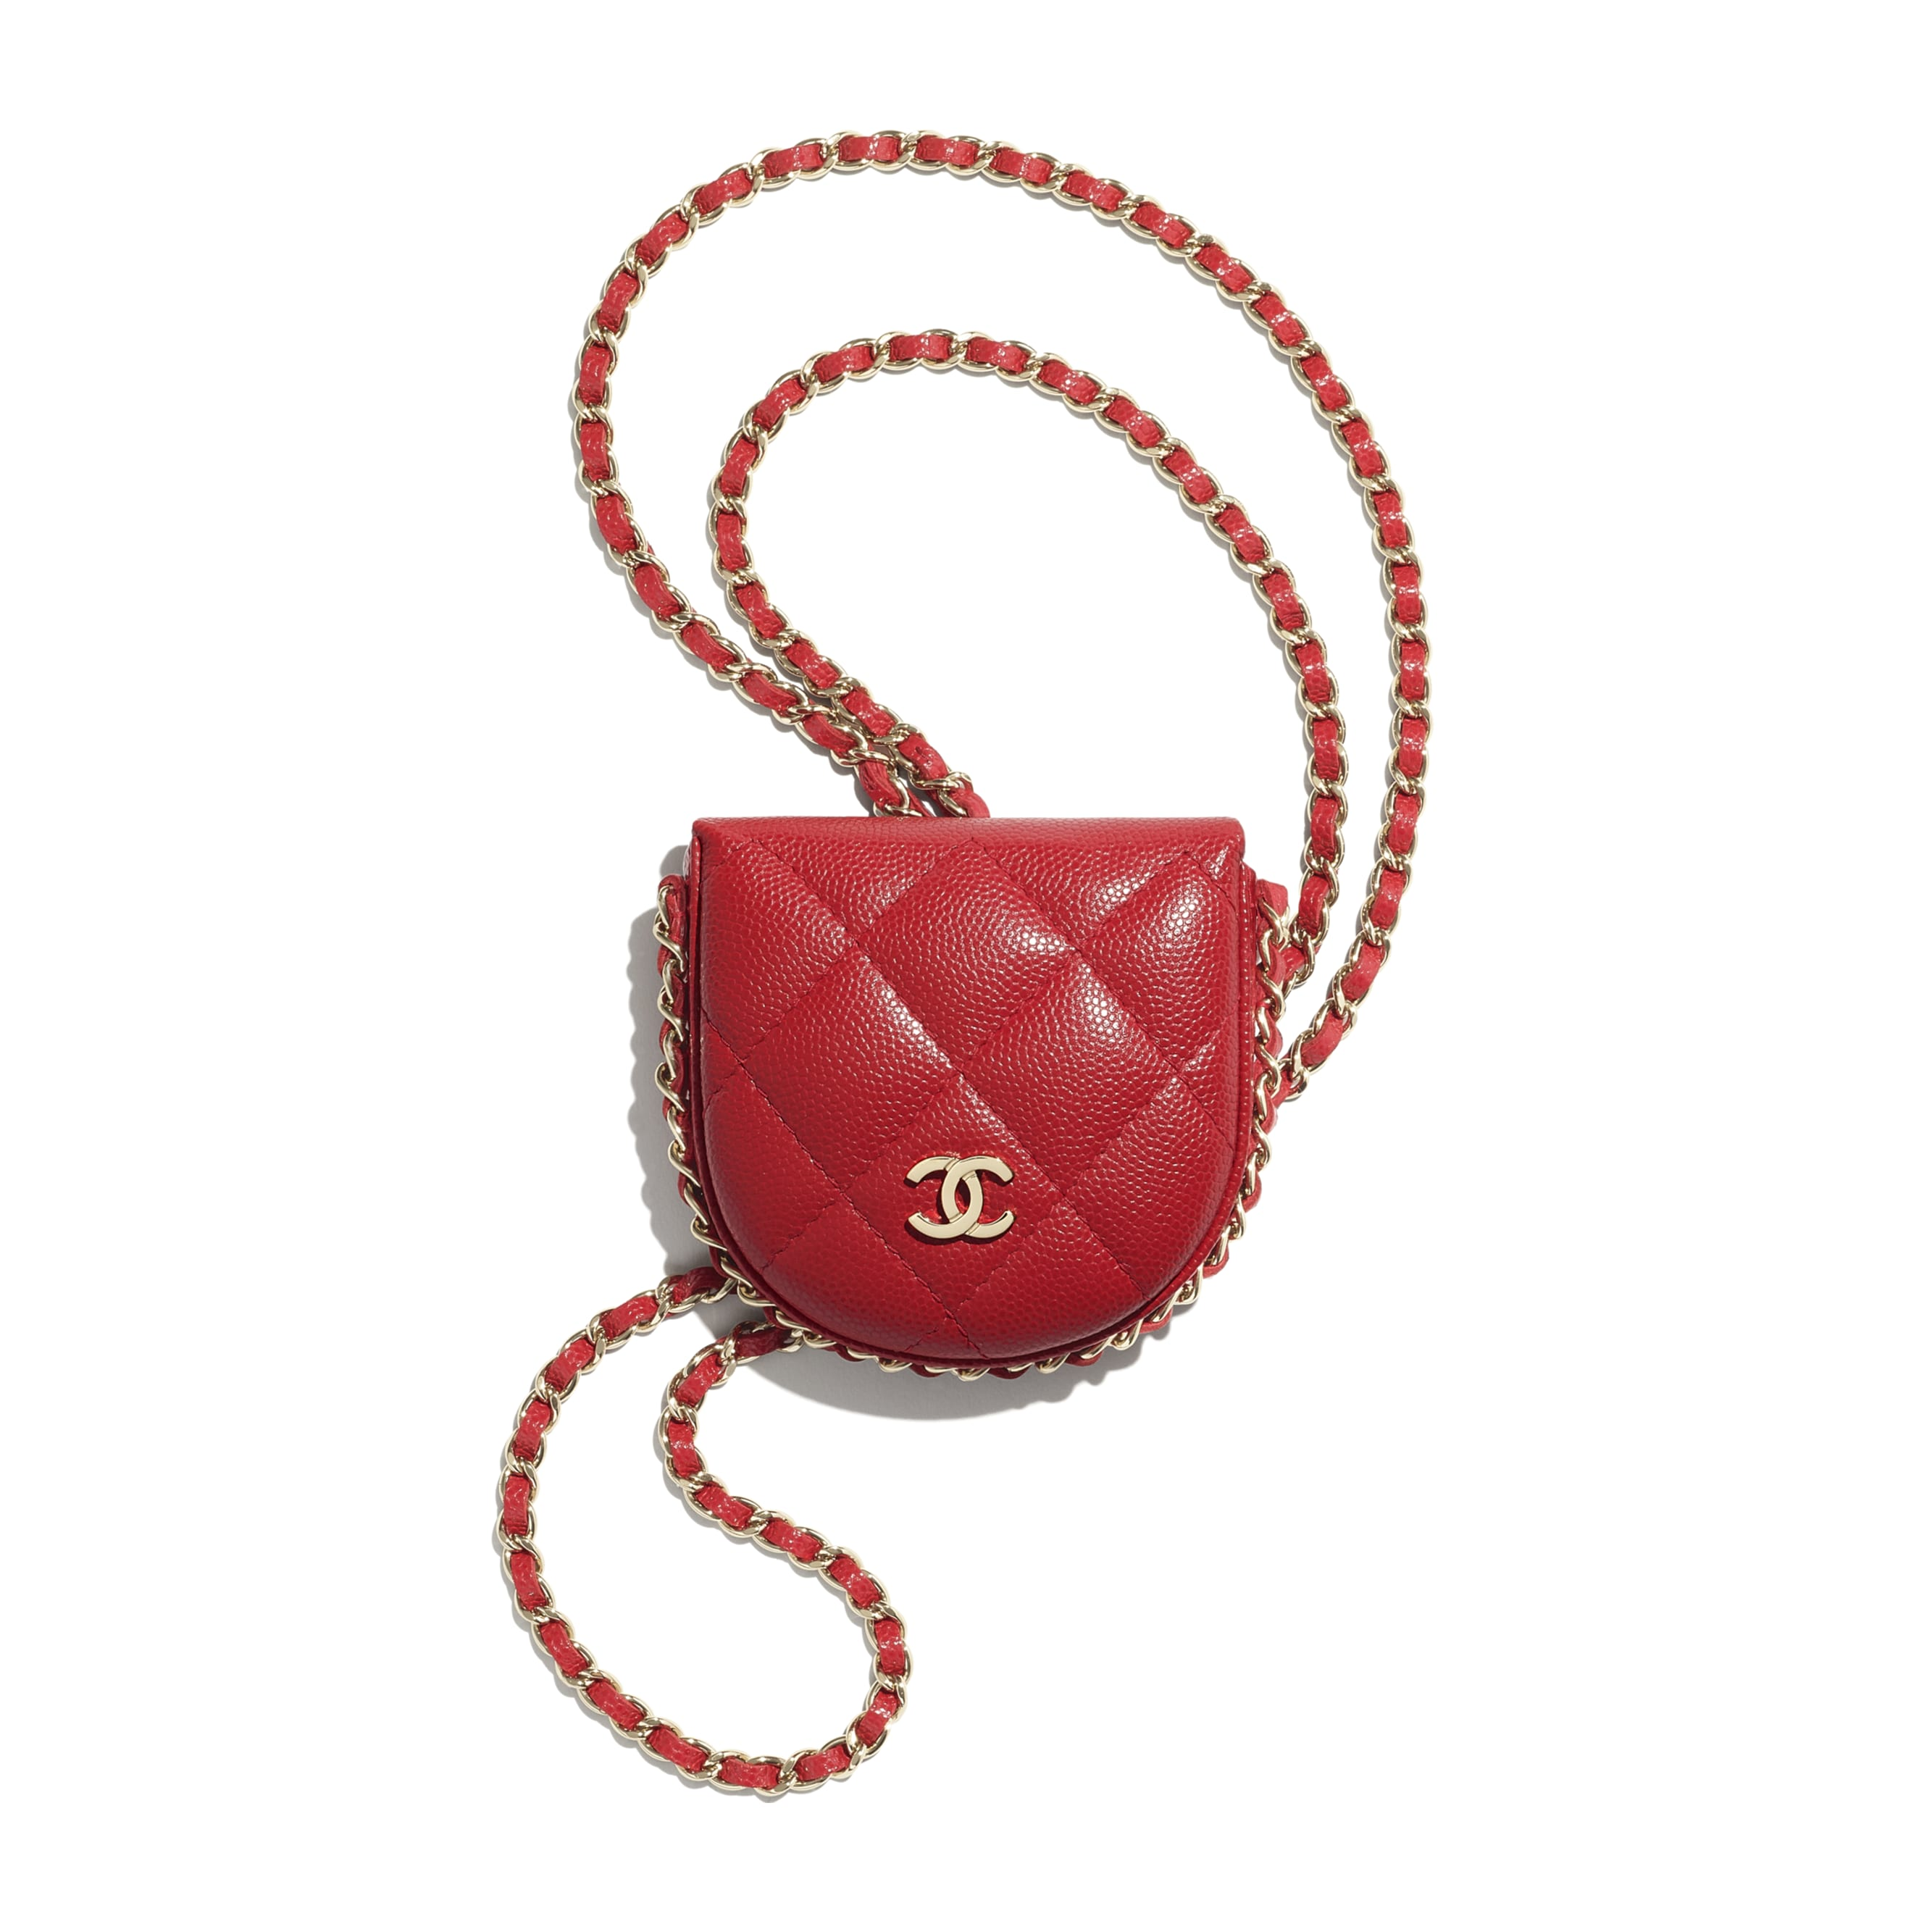 Classic Tray Coin Purse with Chain - Red - Grained Calfskin & Gold-Tone Metal - CHANEL - Default view - see standard sized version